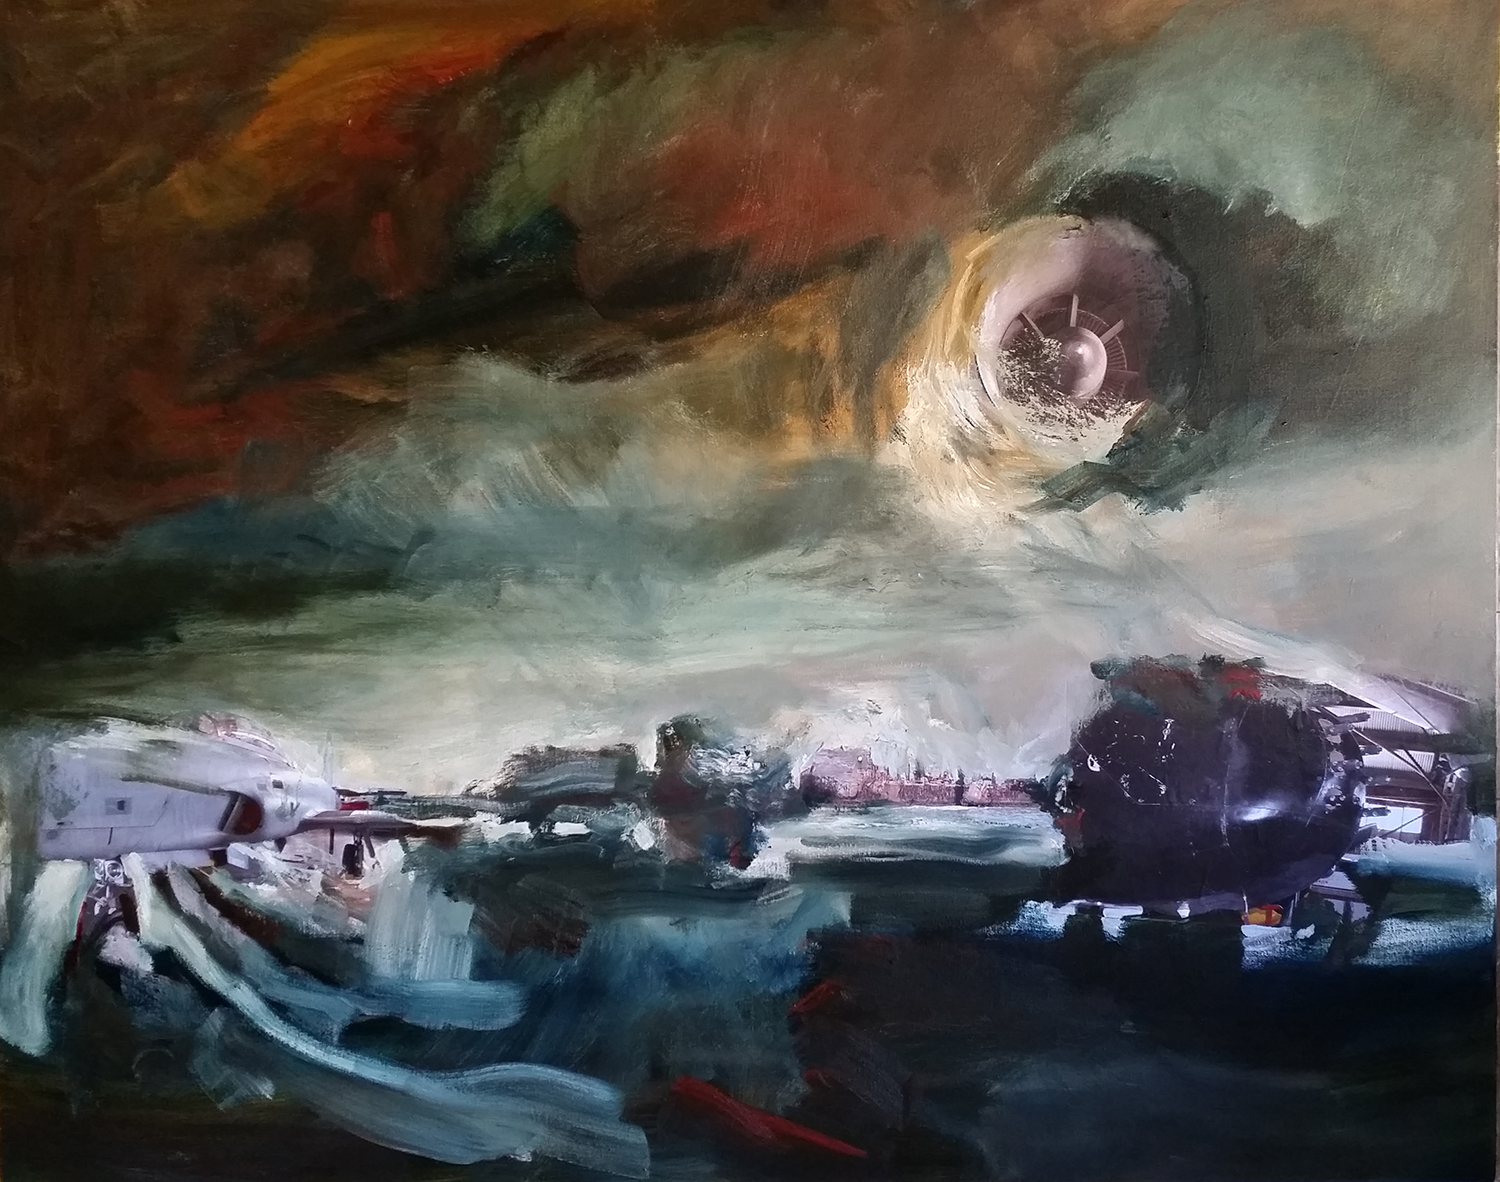 Luna's Surge | Oil and collage on canvas | 48